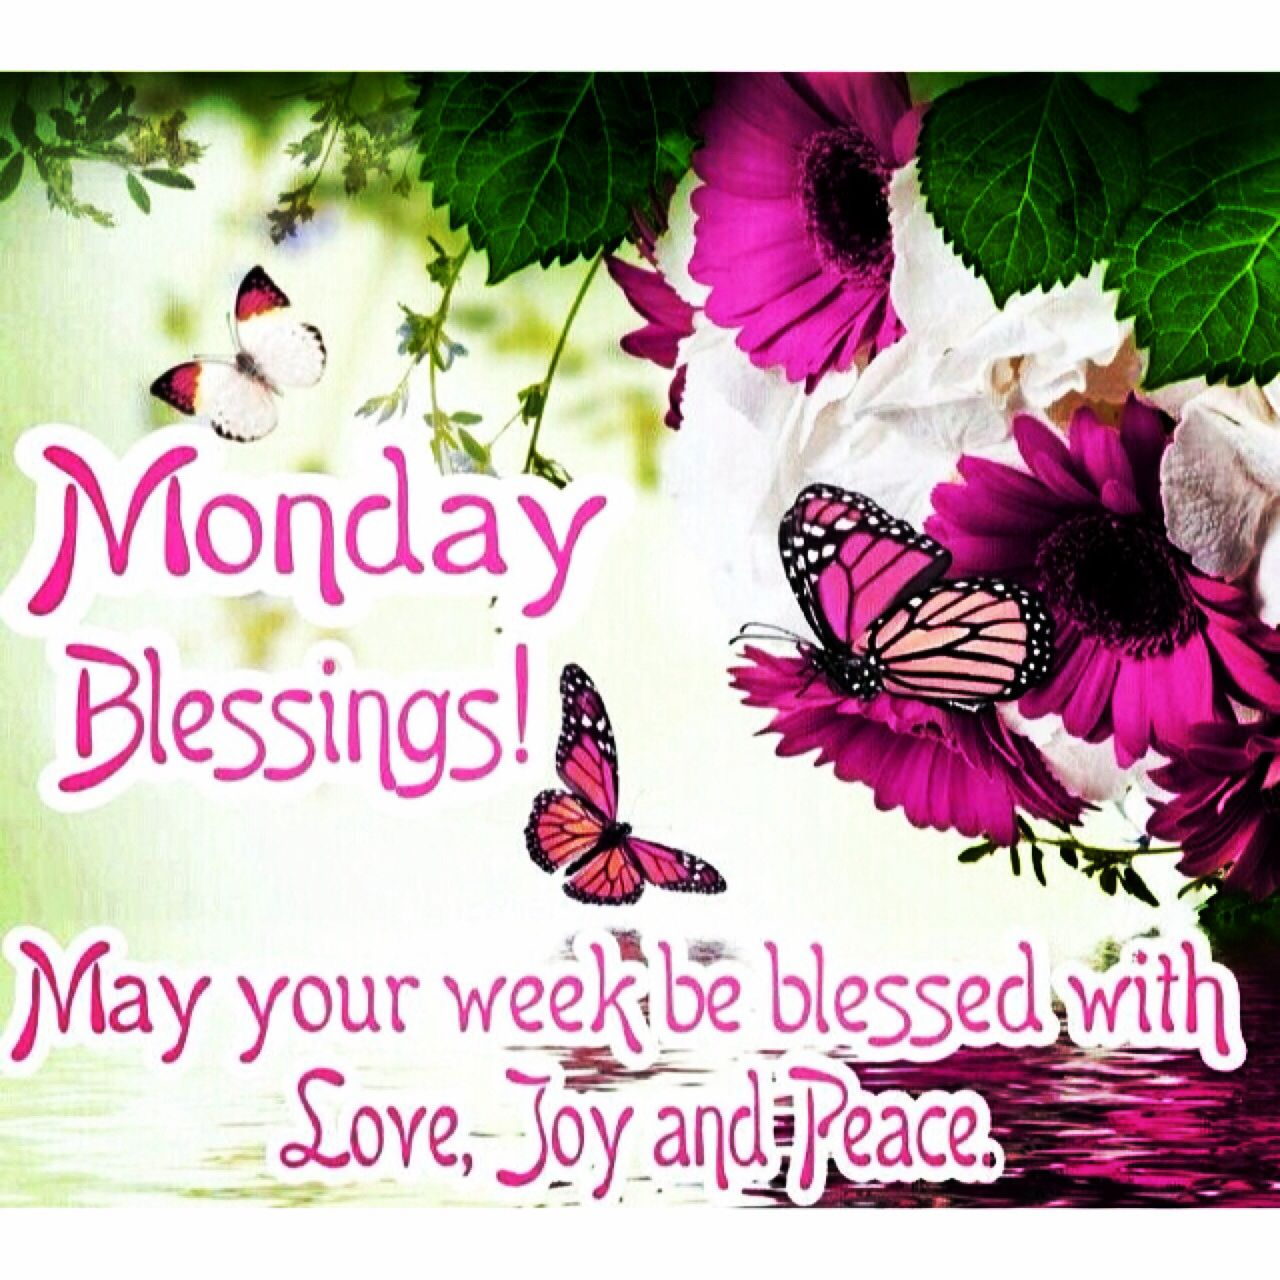 Monday Blessings May Your Week Be Blessed With Love Joy And Peace